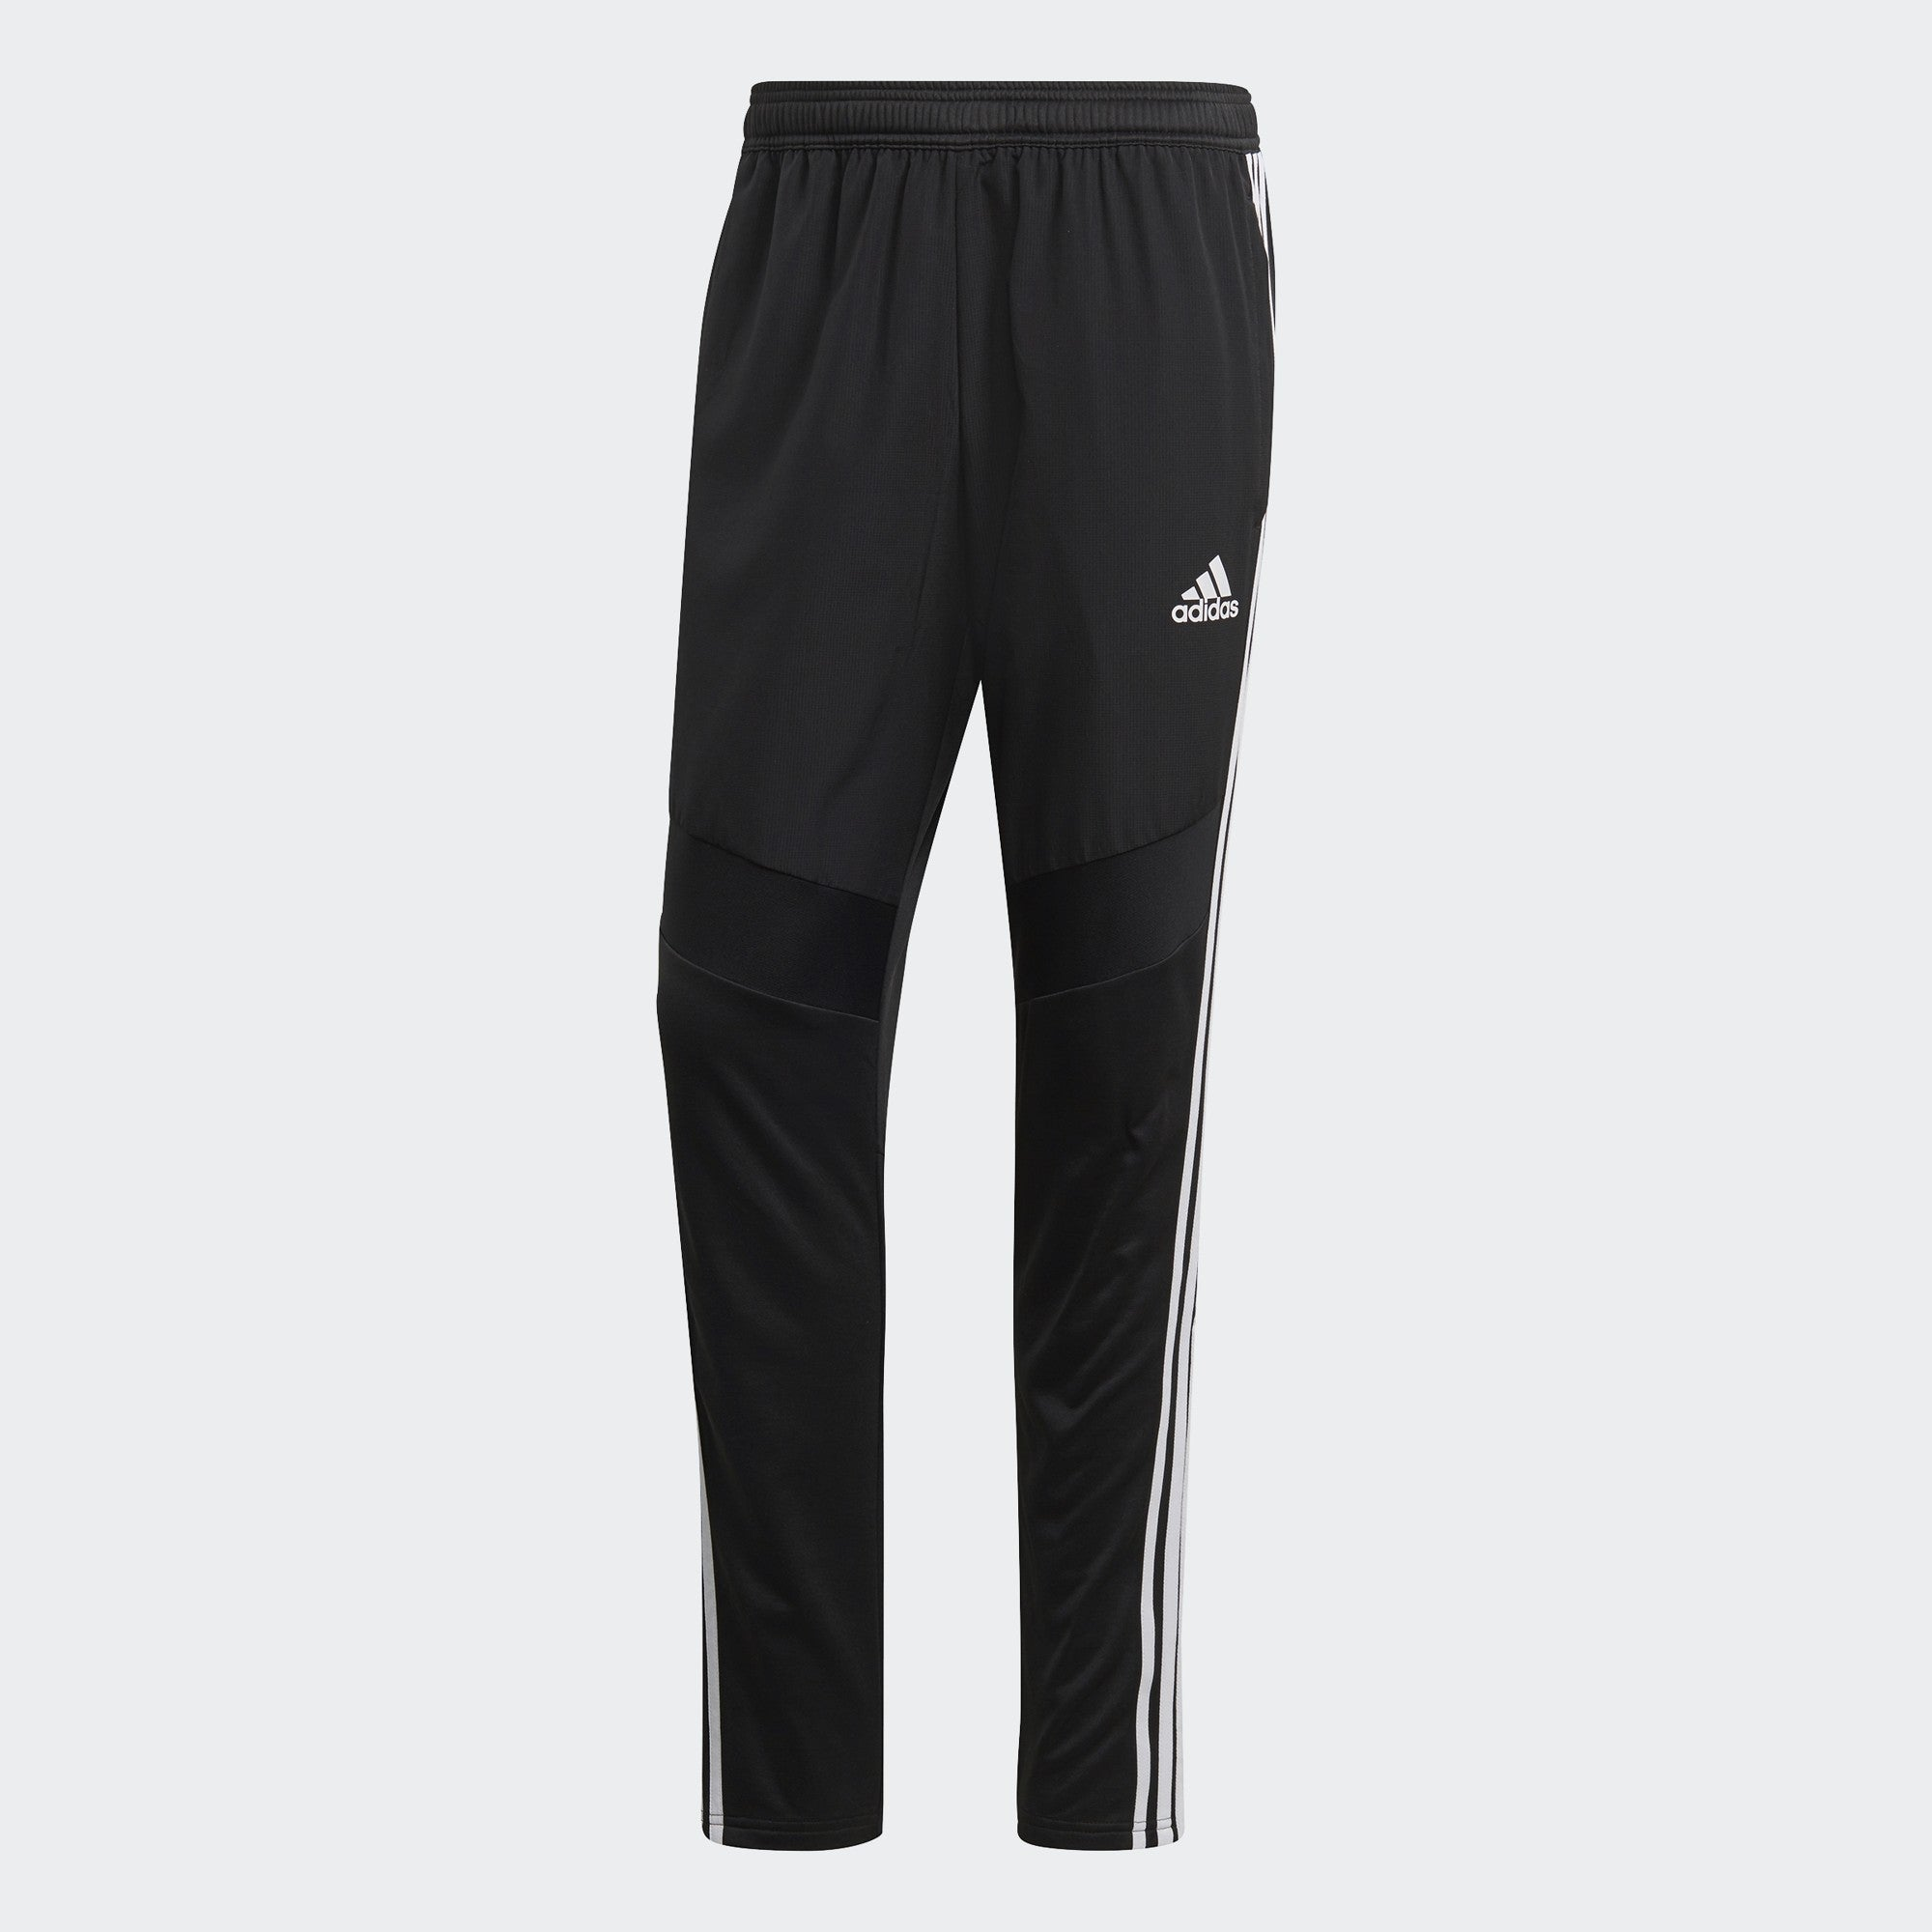 Tiro 19 Training Warm Pants - Black/White - Men's